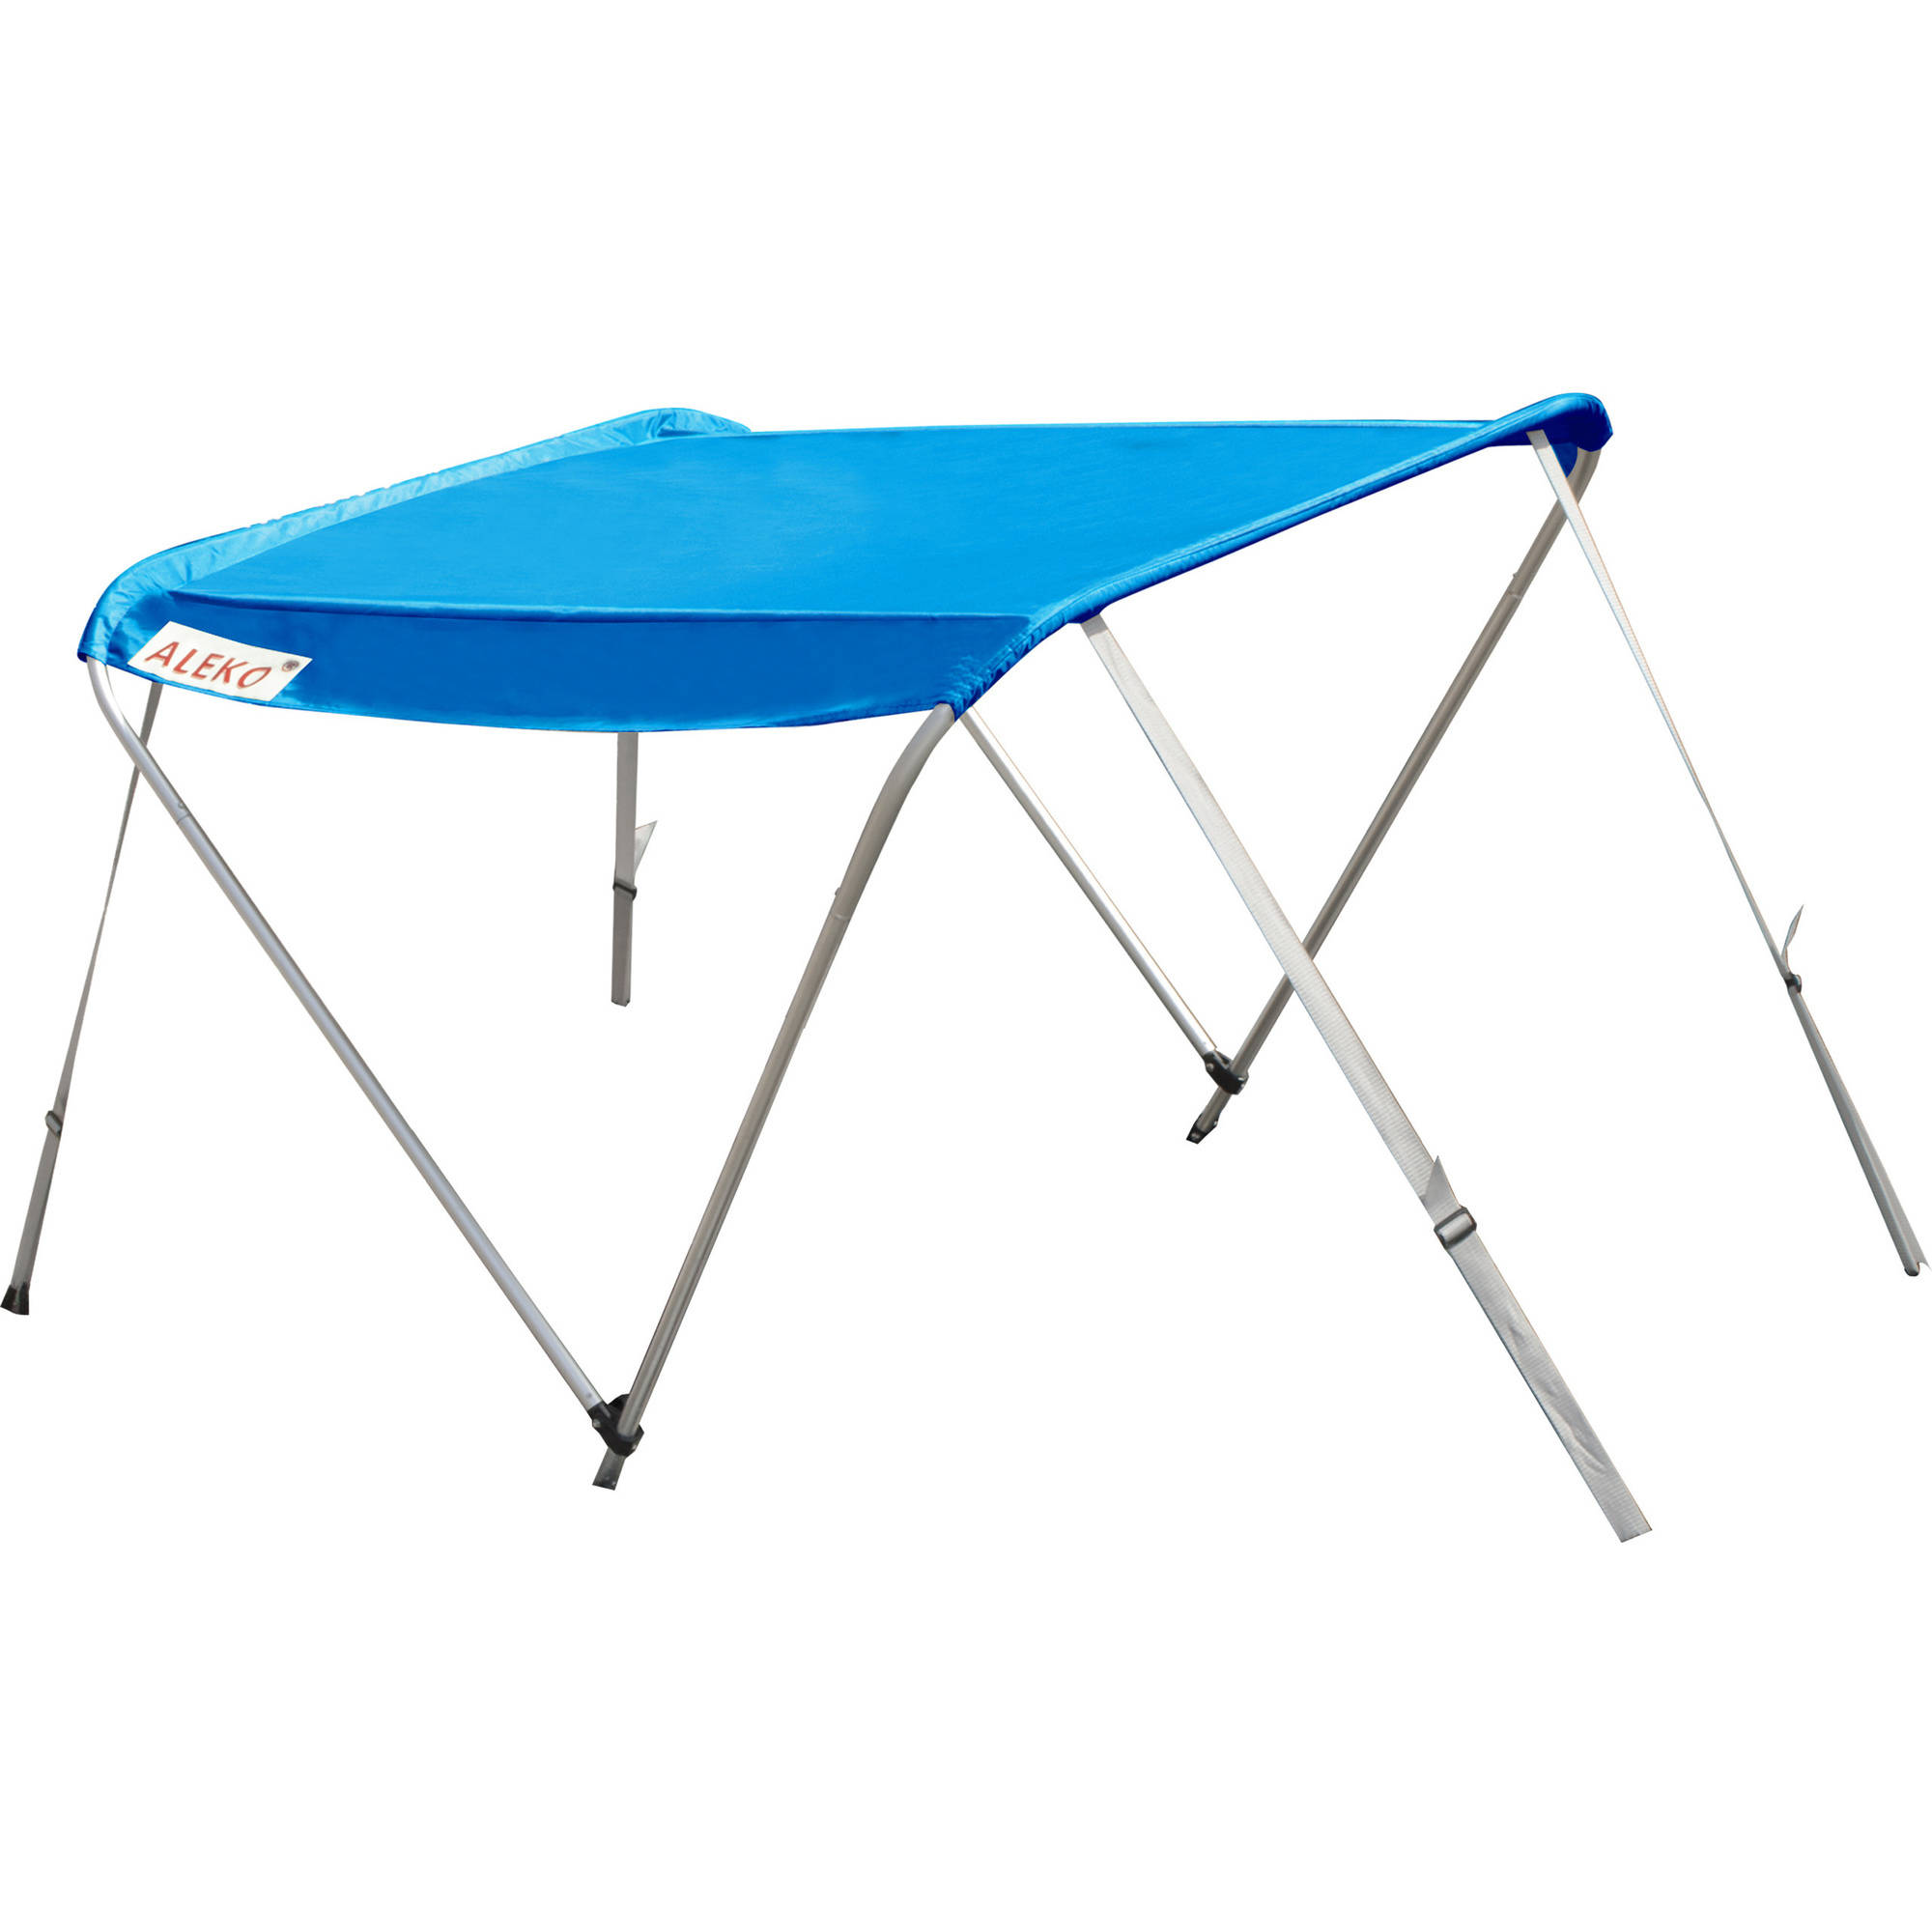 ALEKO BSTENT320B Summer Canopy Boat Tent Sun Shelter Sunshade for Inflatable